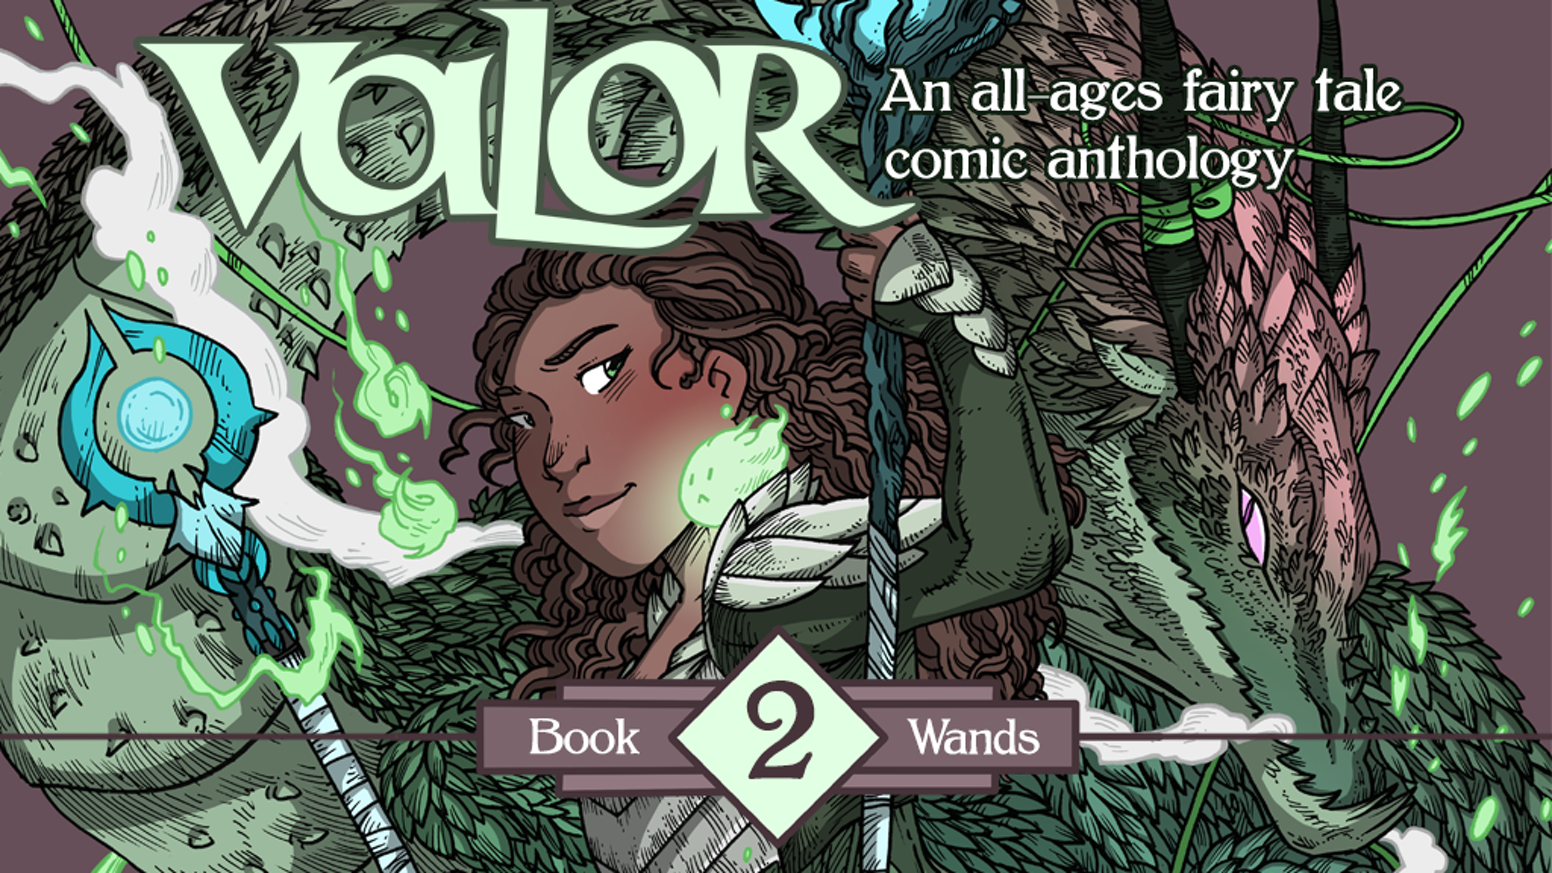 """Valor"" is a comic anthology series that pays homage to the strength, resourcefulness, and cunning of female heroines in fairy tales."